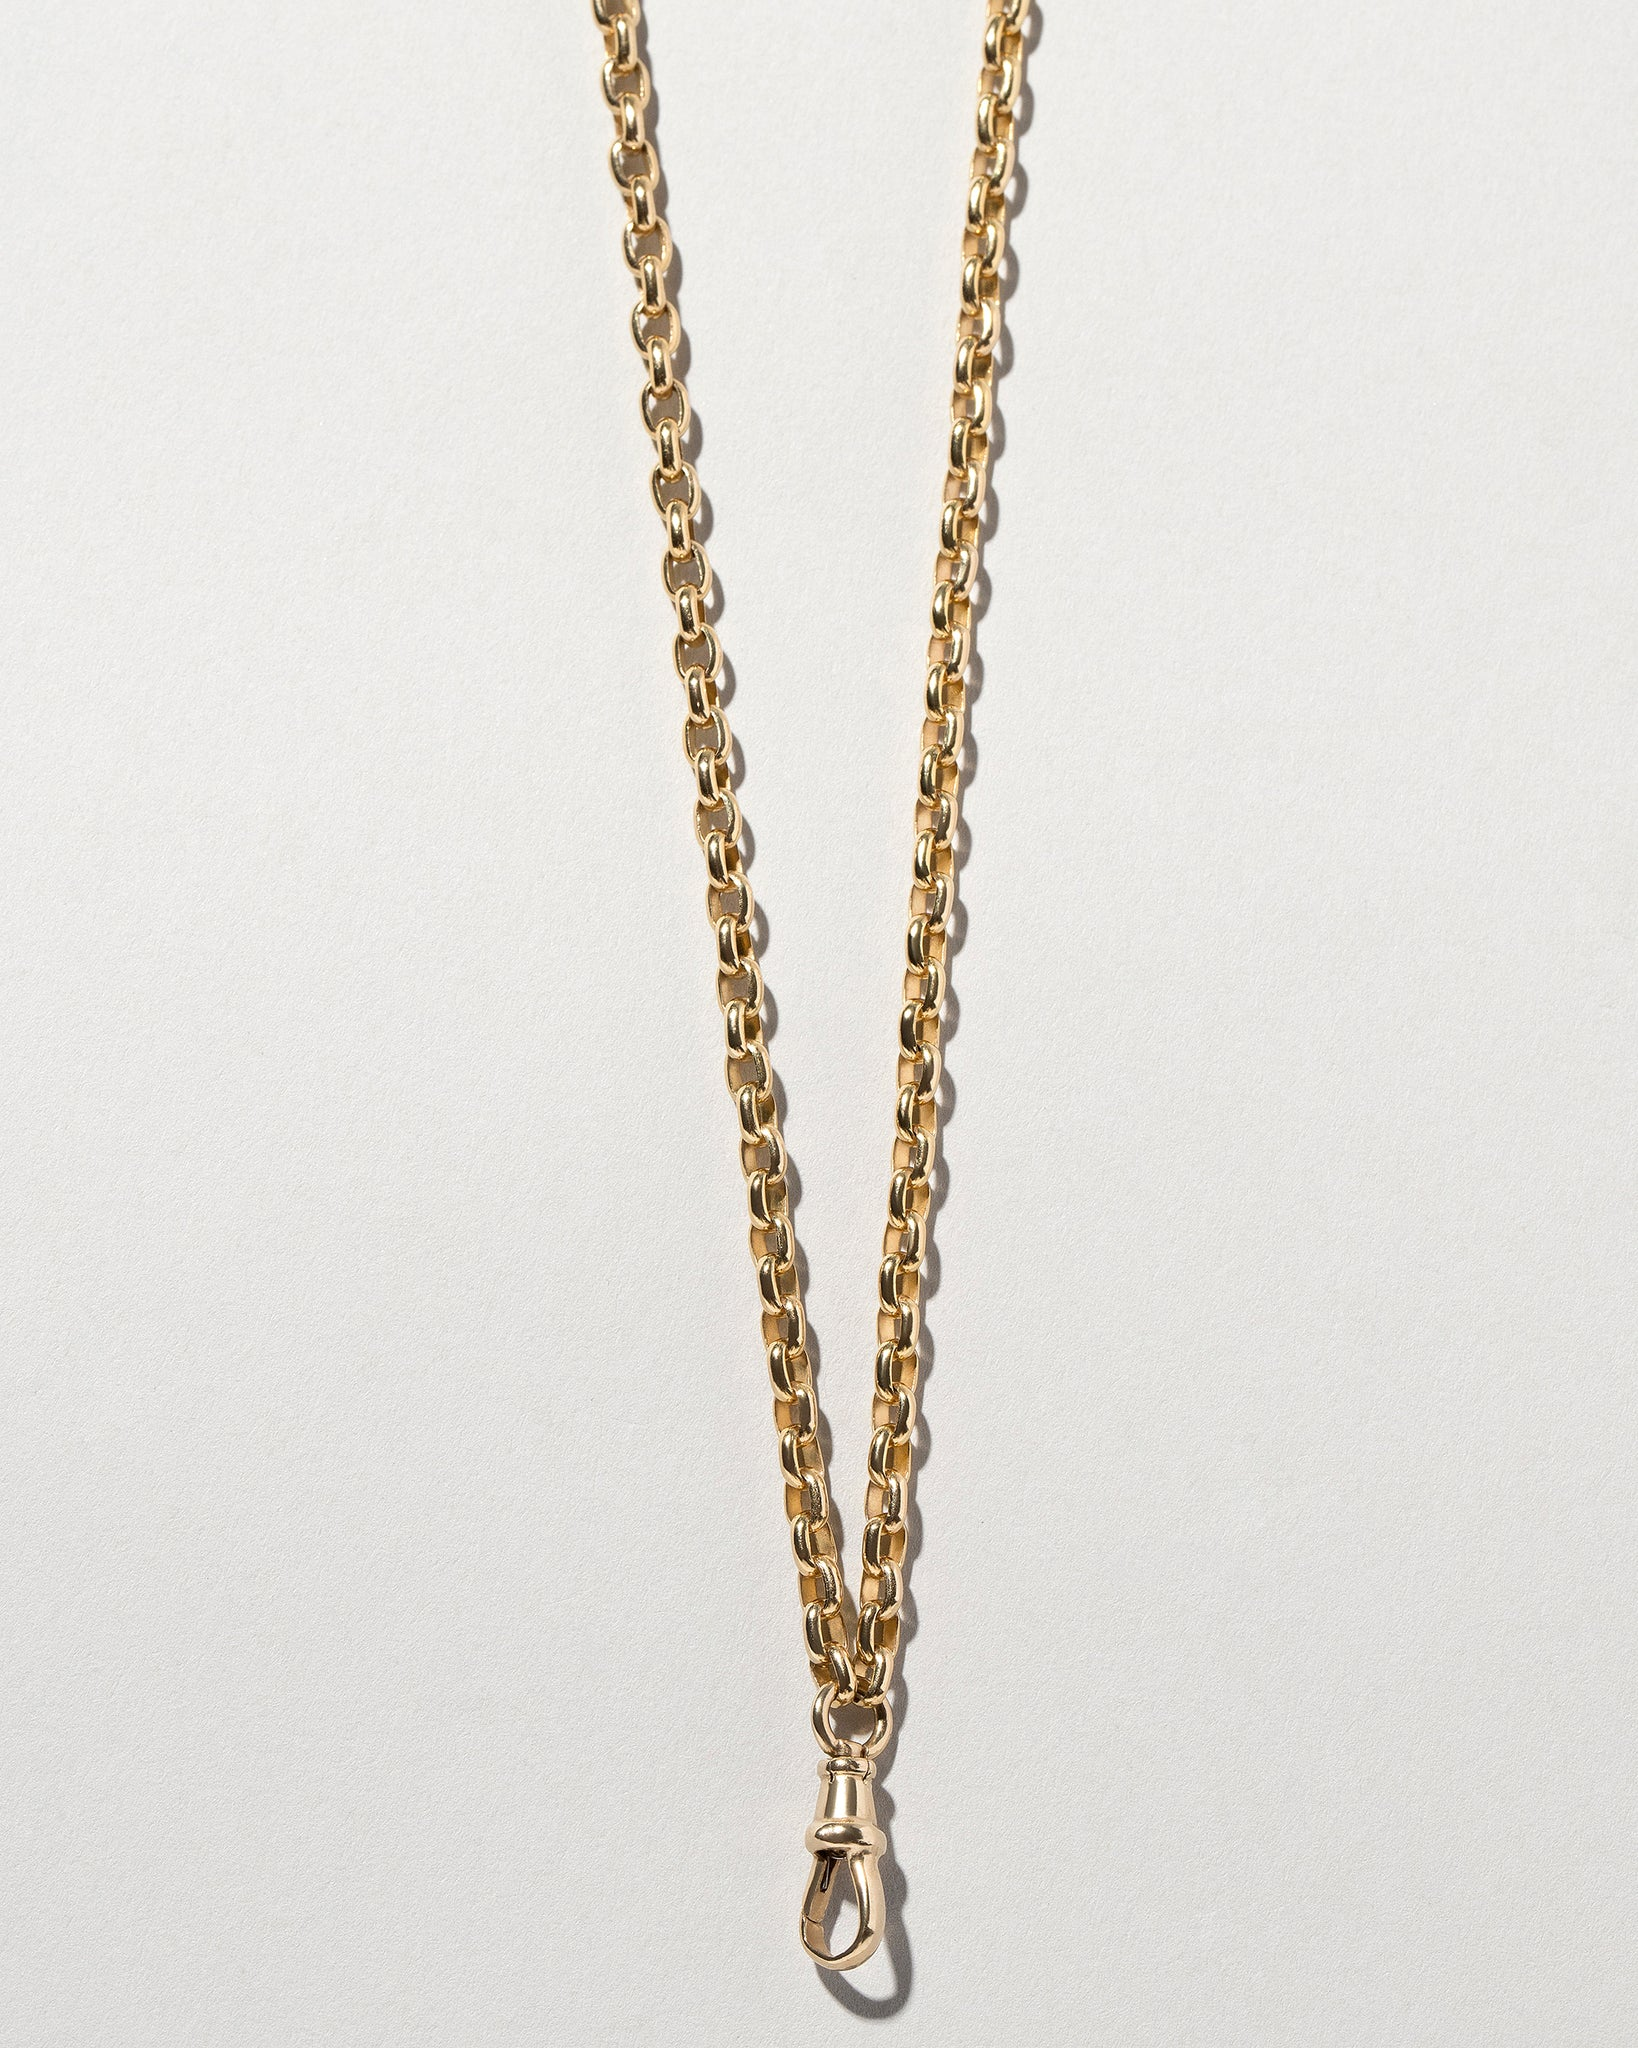 Short Loop Chain Necklace with Fob